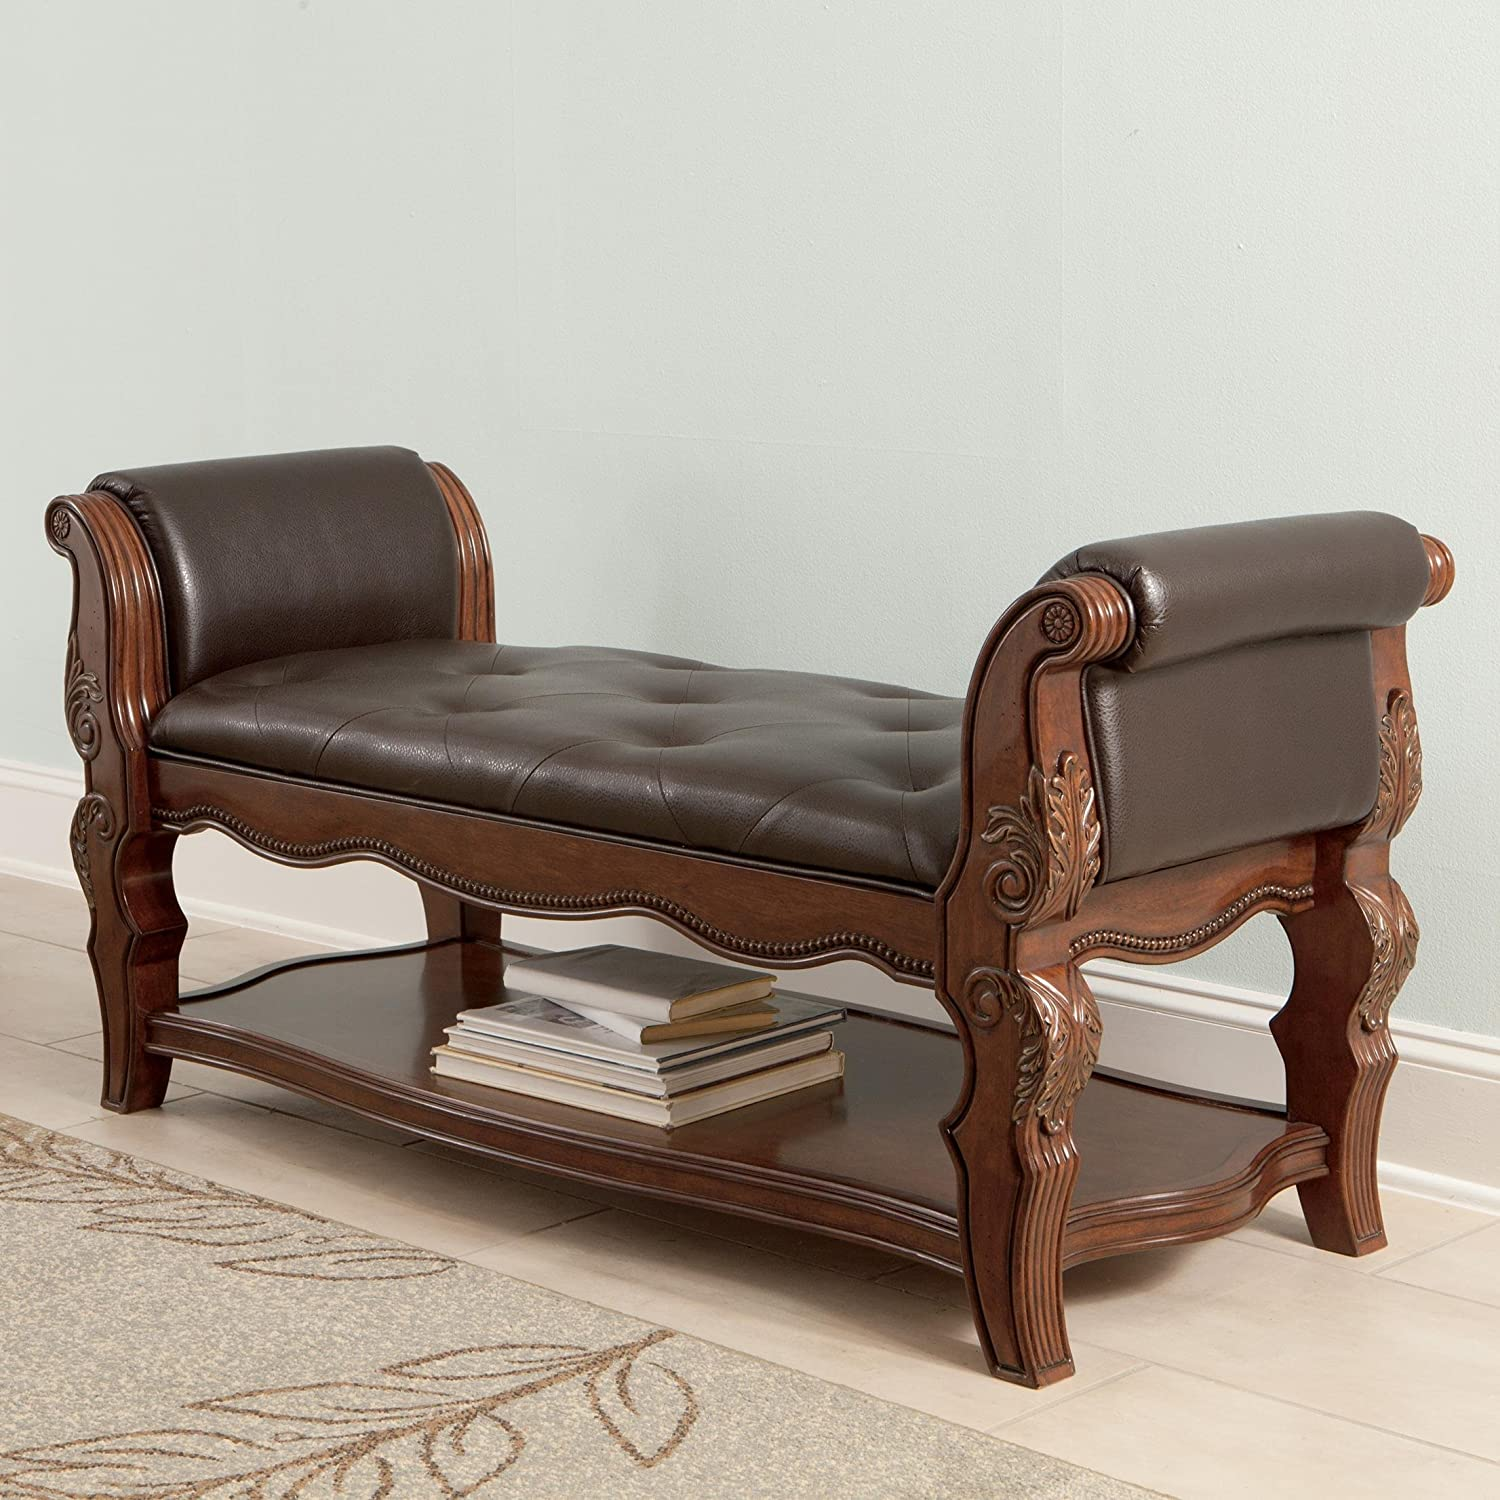 Amazon.com: Ashley B70509 Ledelle Upholstered Bench With Ash Swirl Birch  Veneers And Asian Hardwoods In: Kitchen U0026 Dining